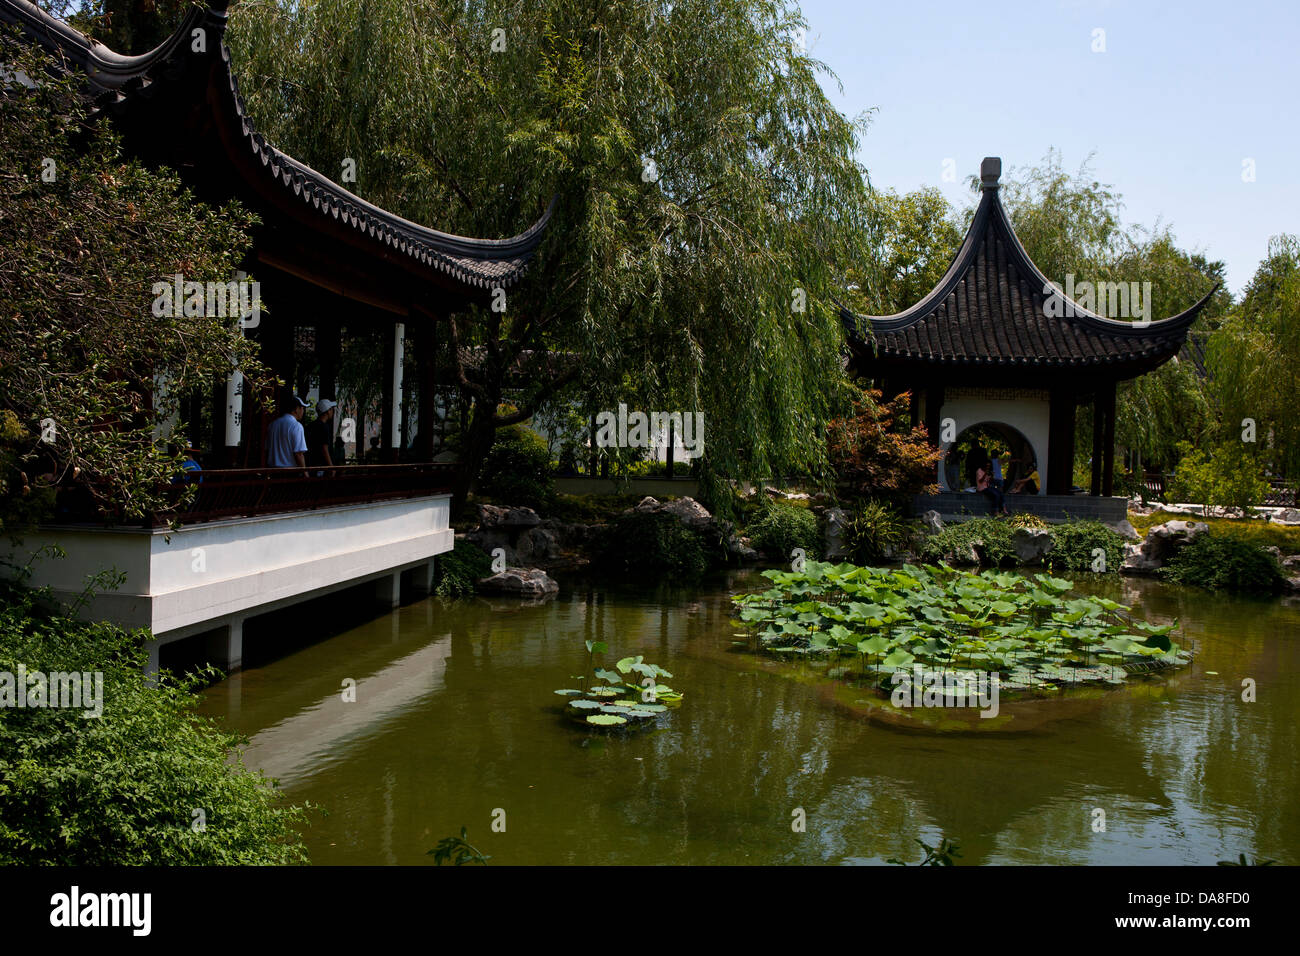 Exceptionnel Chinese Garden, The Huntington Library, Art Collection, And Botanical  Gardens San Marino, California, United States Of America